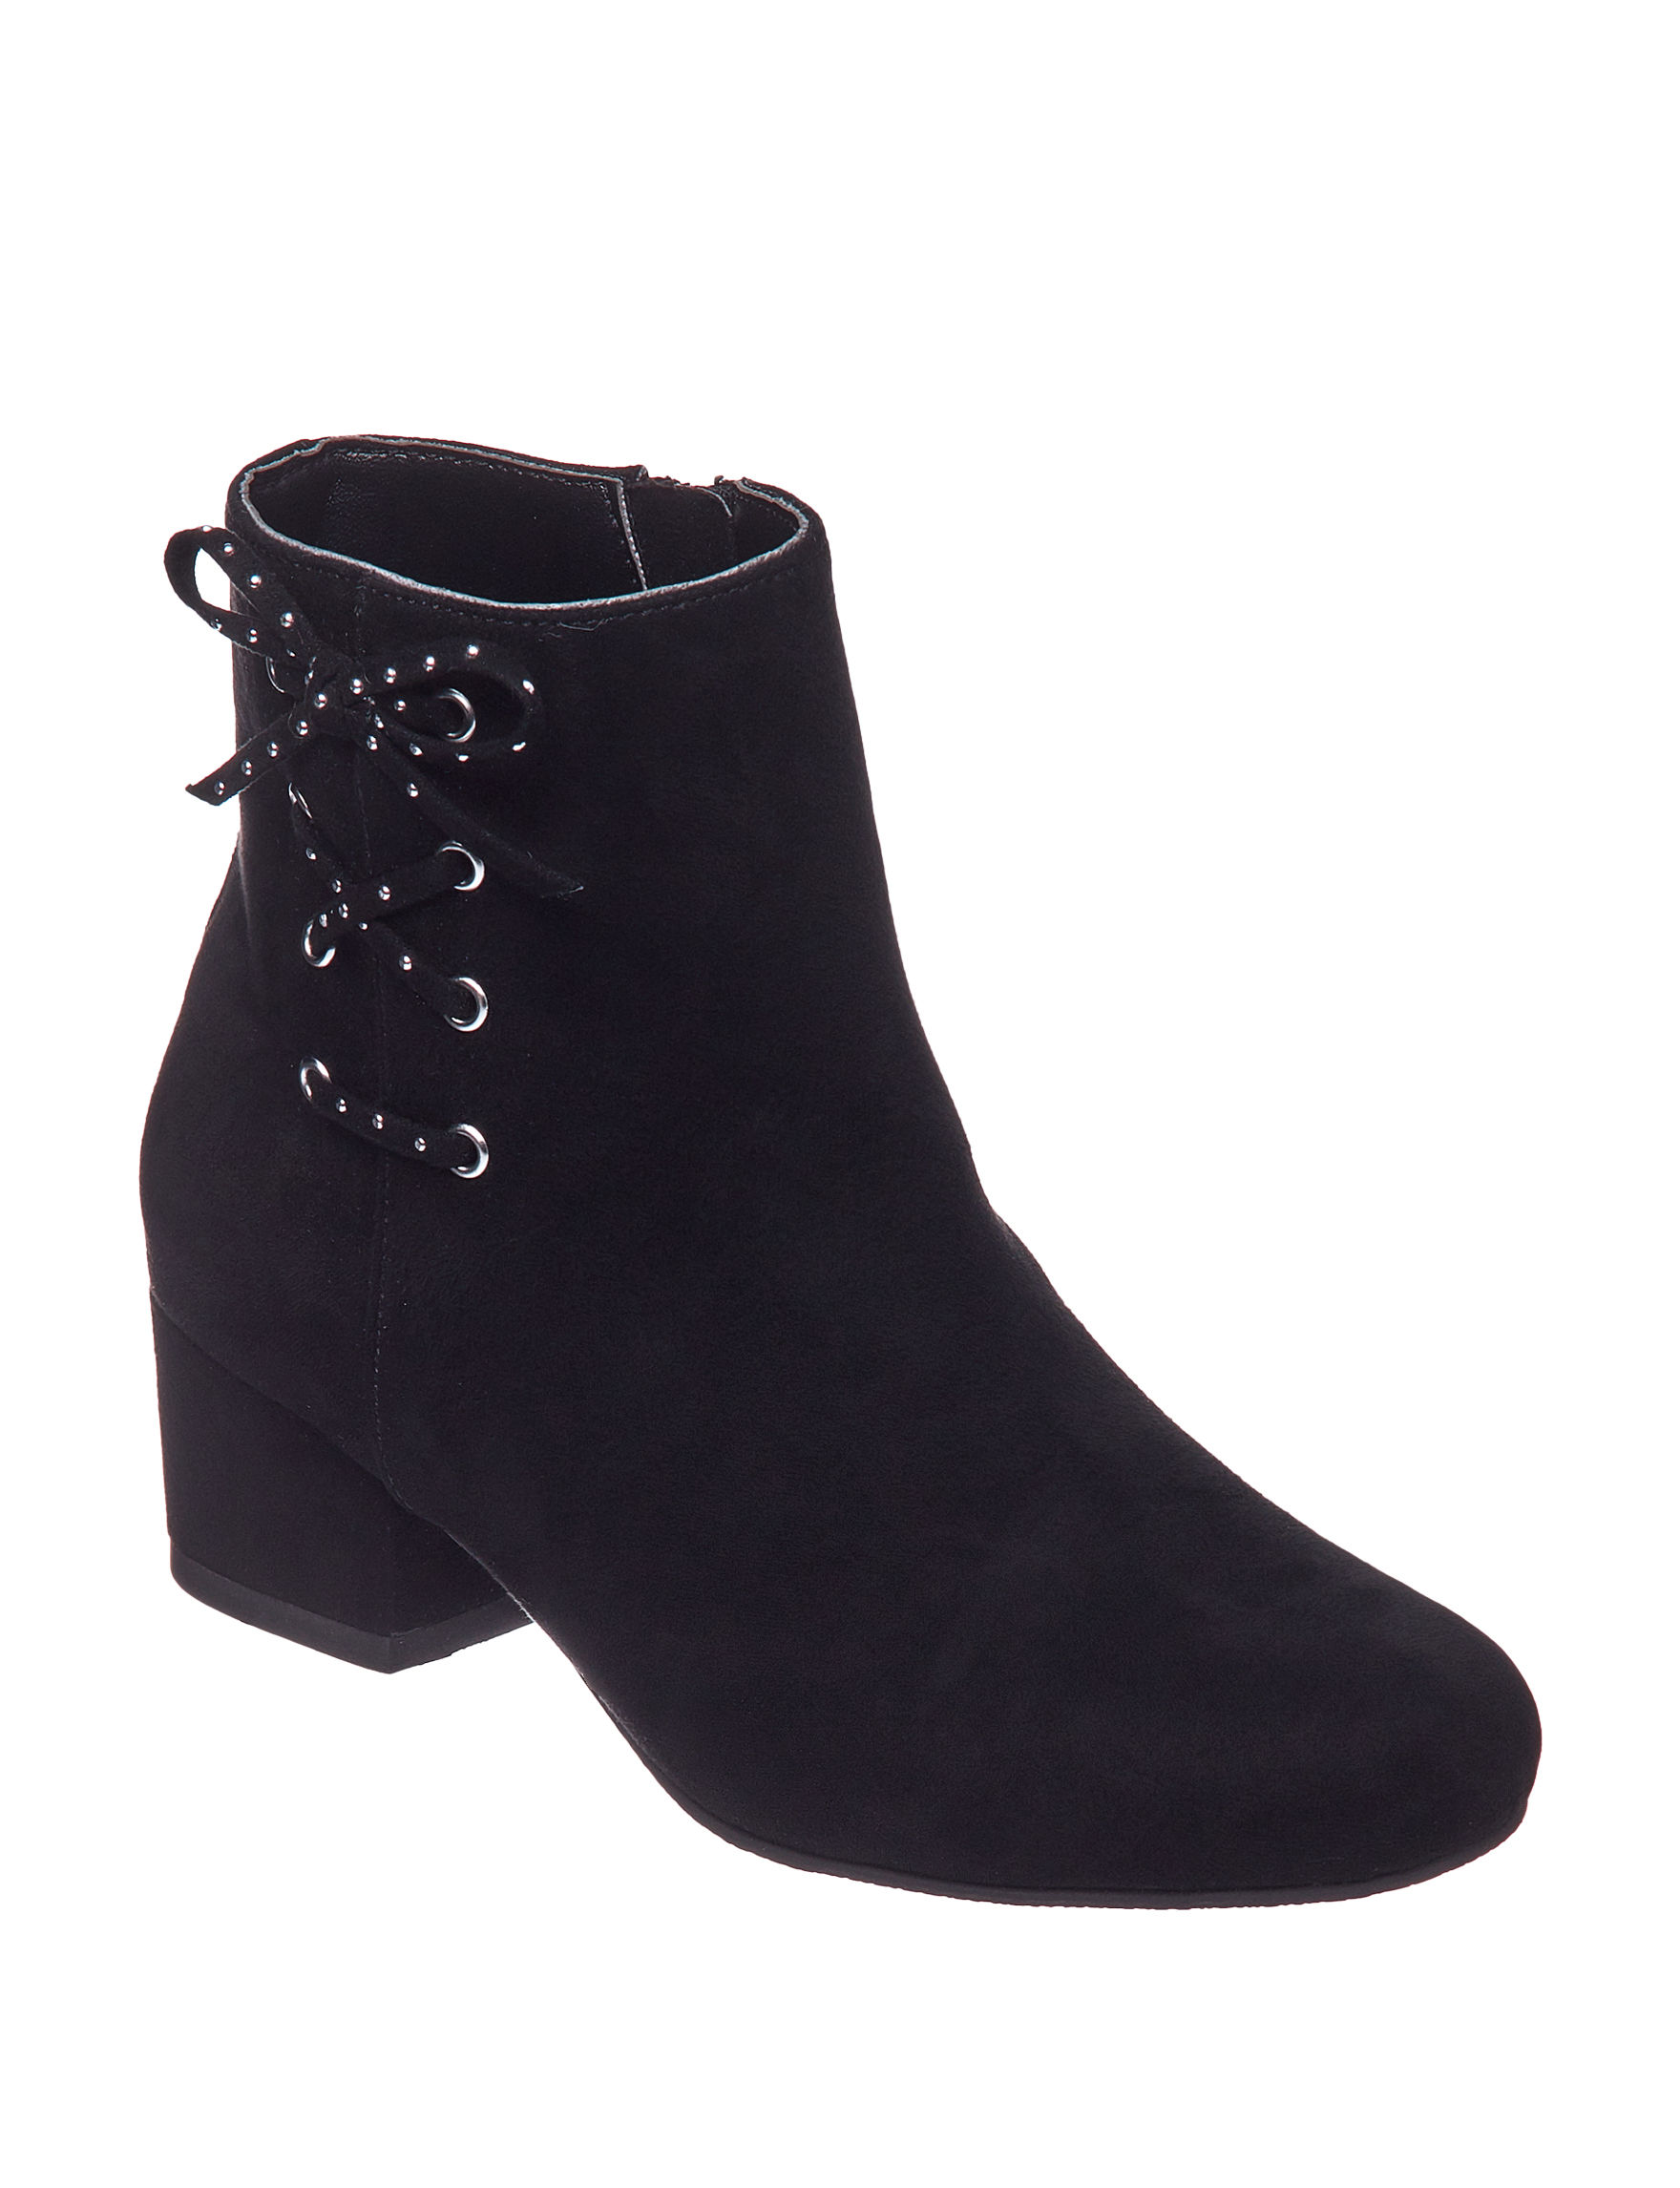 Circus By Sam Edelman Black Ankle Boots & Booties